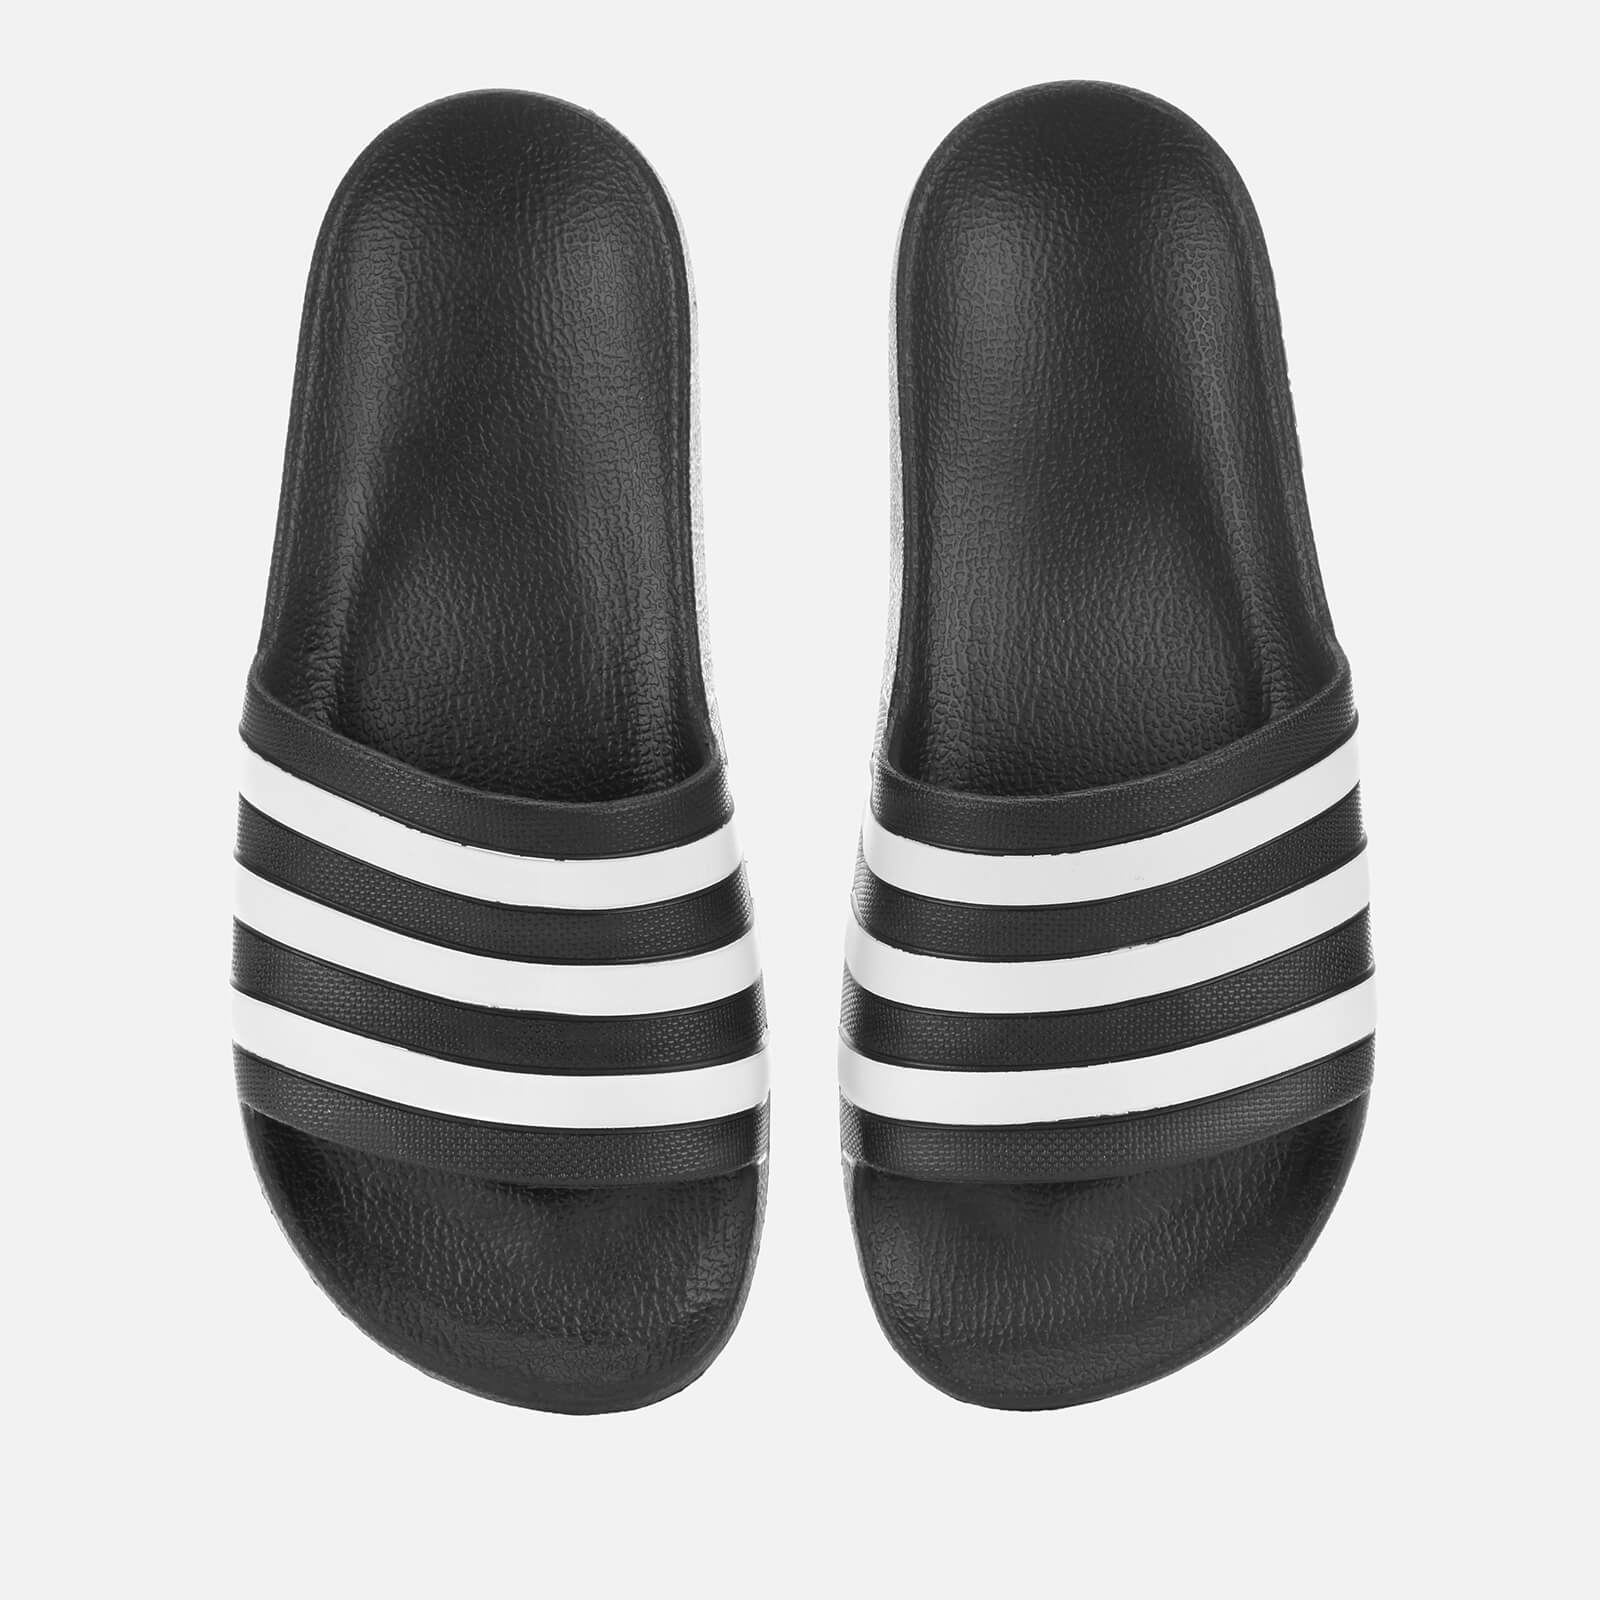 c4b0a9857 adidas Men's Adilette Aqua Slide Sandals - Black Sports & Leisure |  TheHut.com